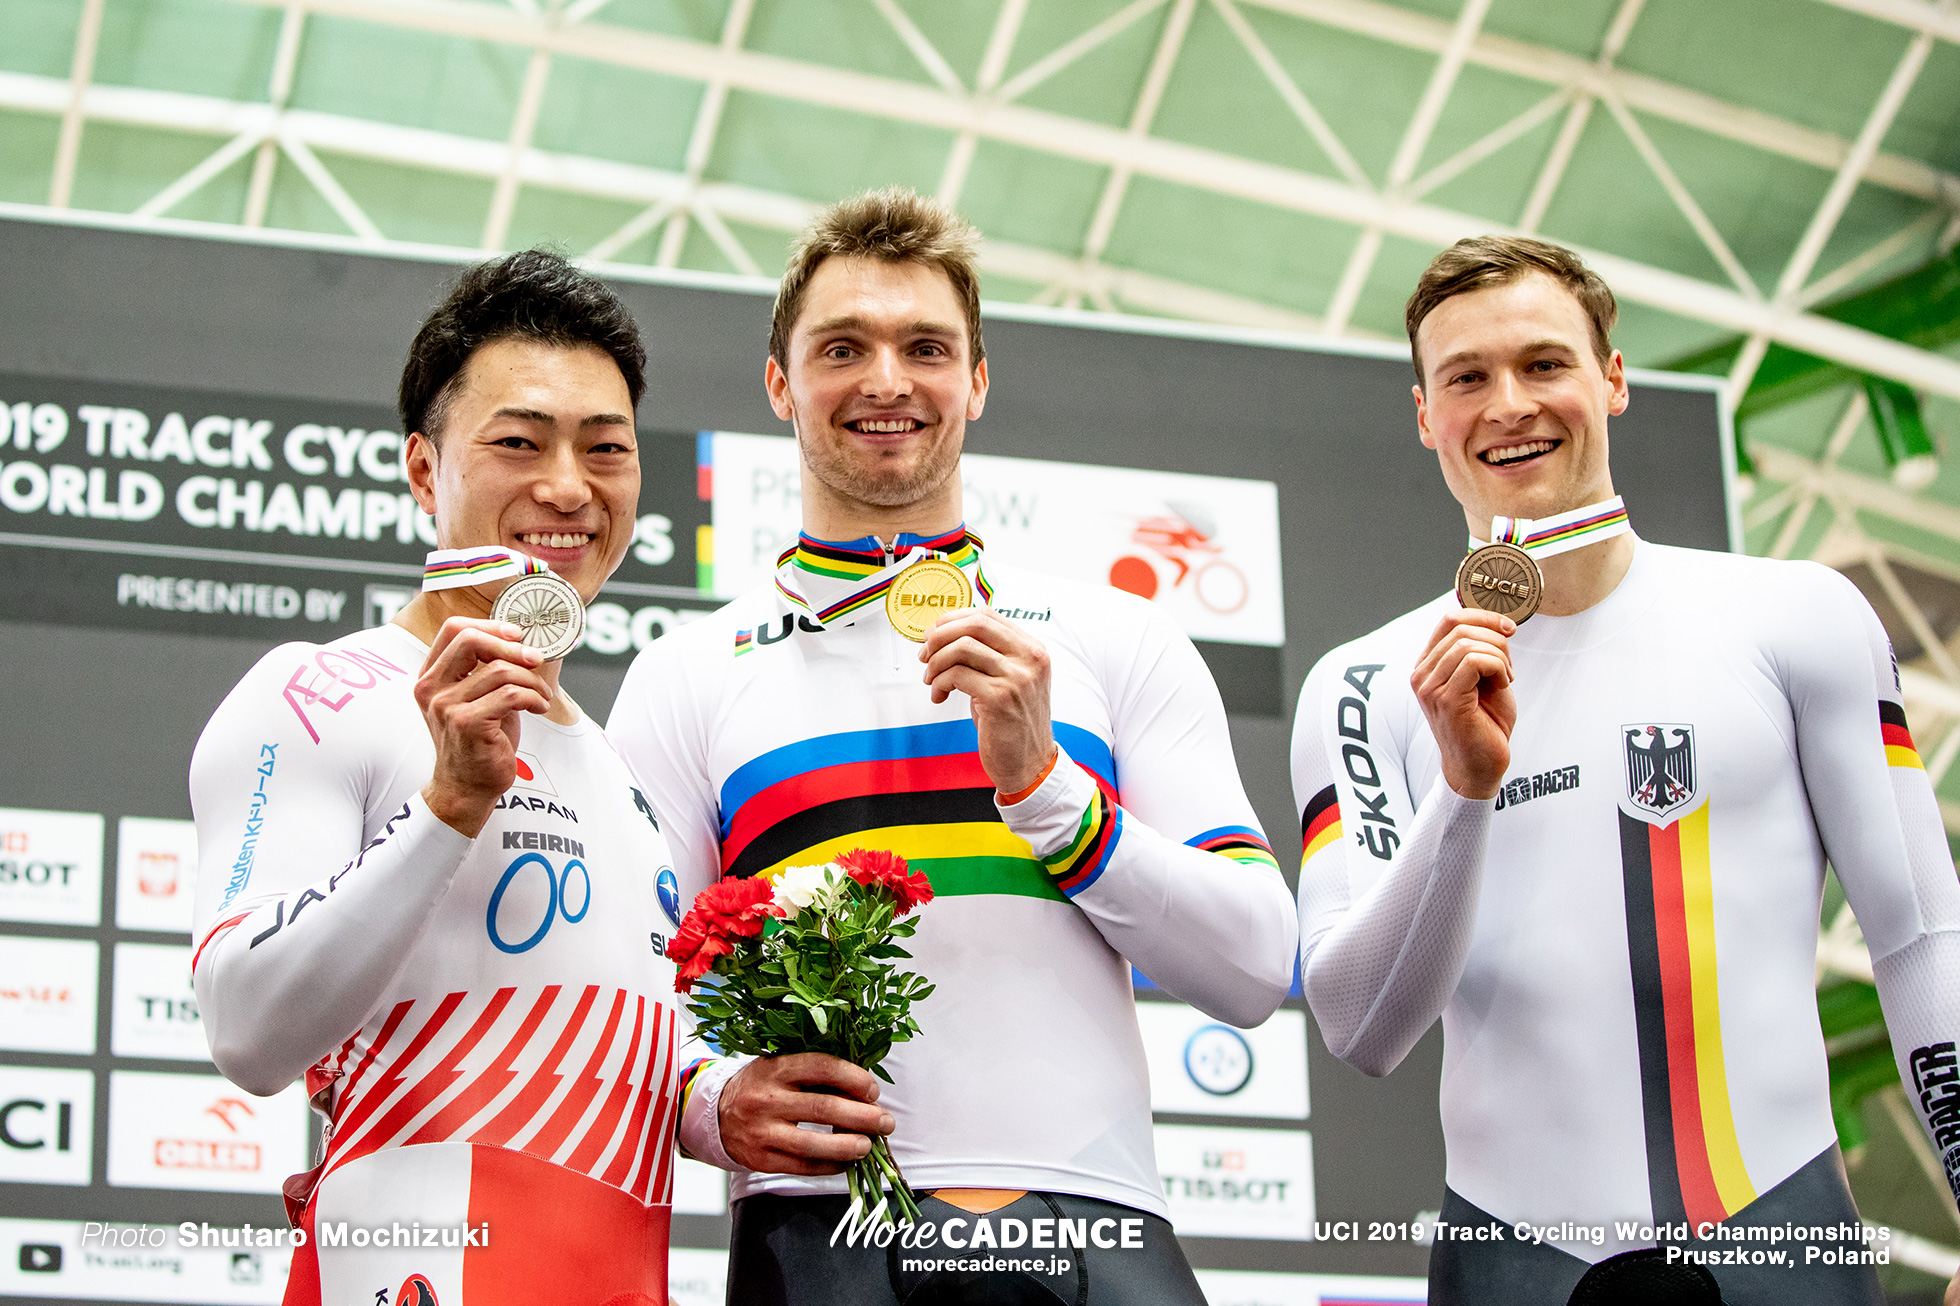 Men's Keirin Final / 2019 Track Cycling World Championships Pruszków, Poland